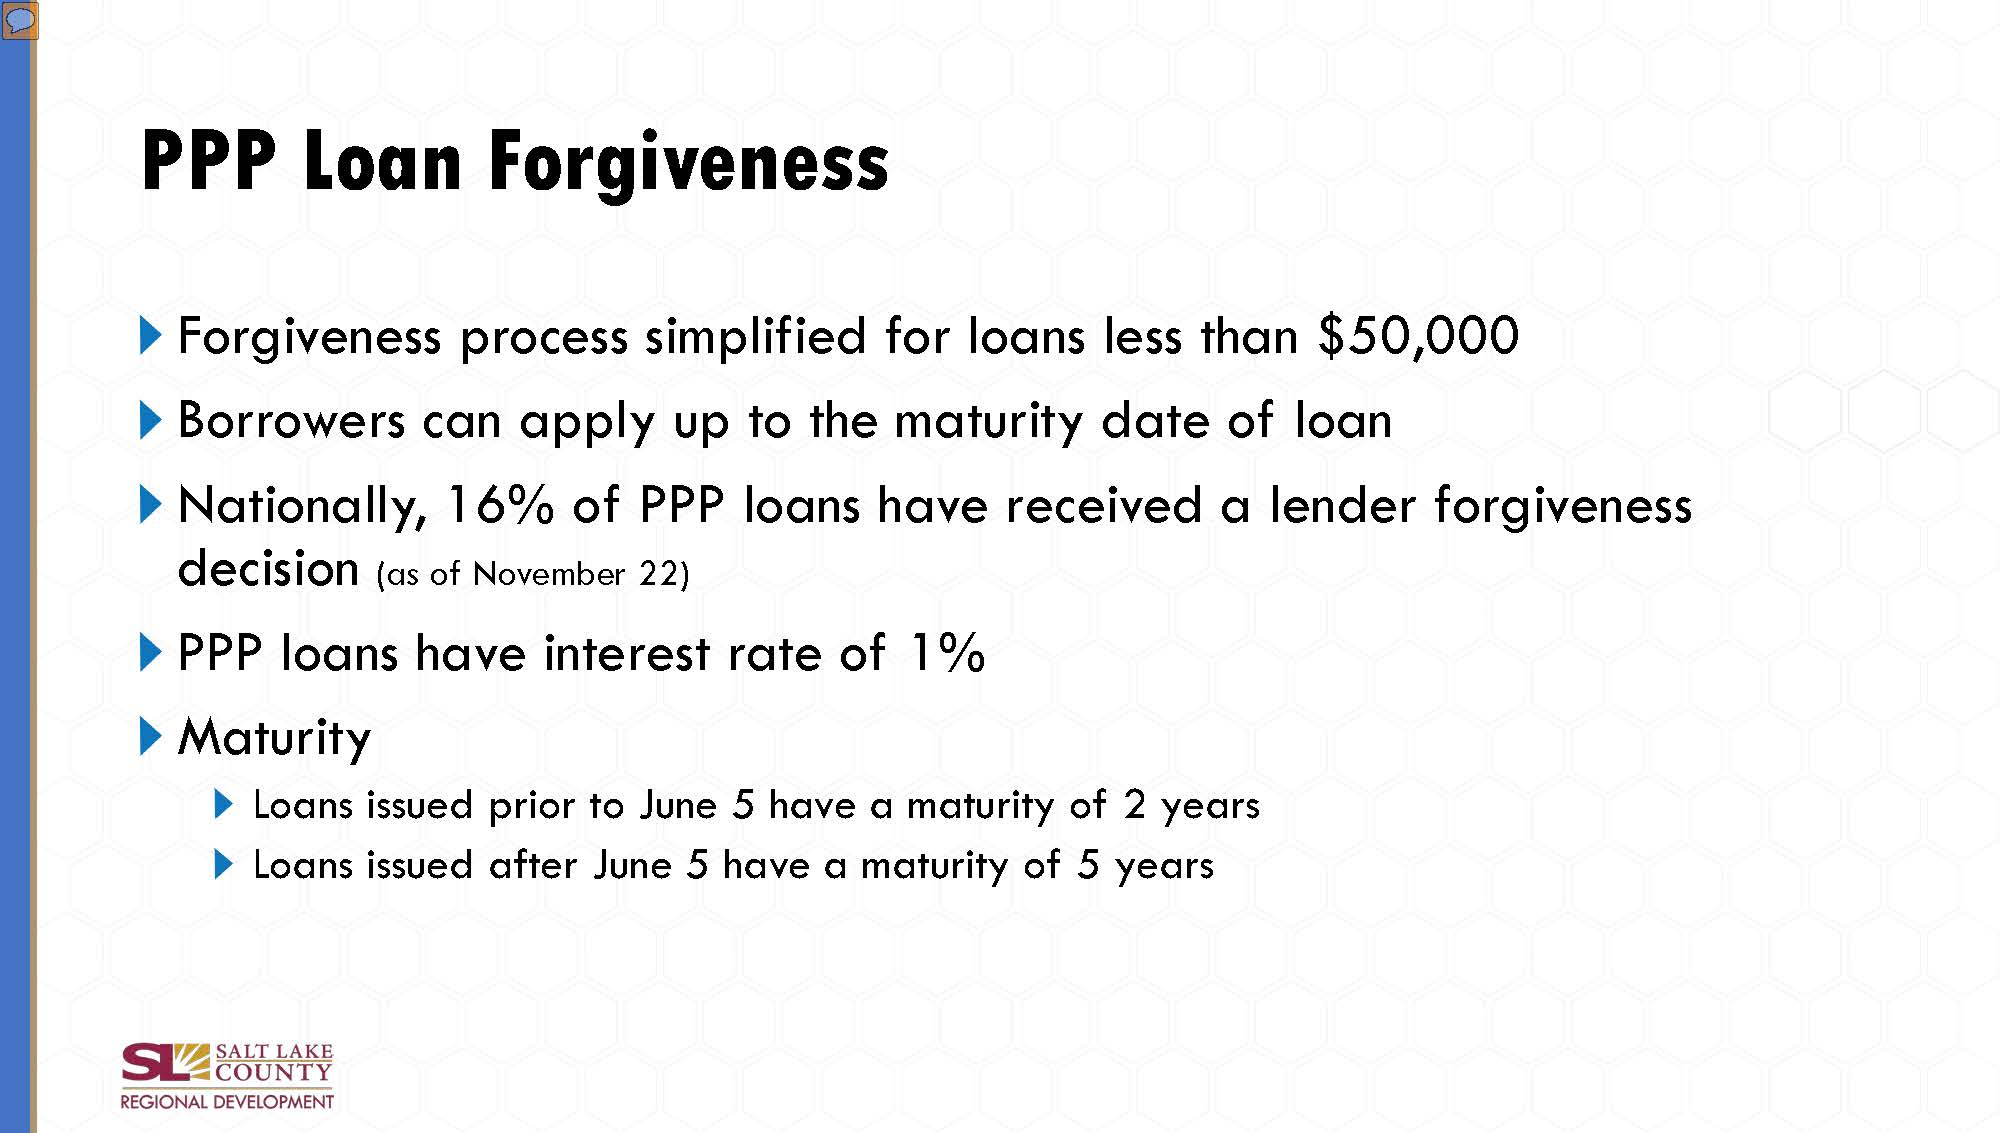 COW PPP Forgiveness_2020 Dec 15_Page_4.jpg